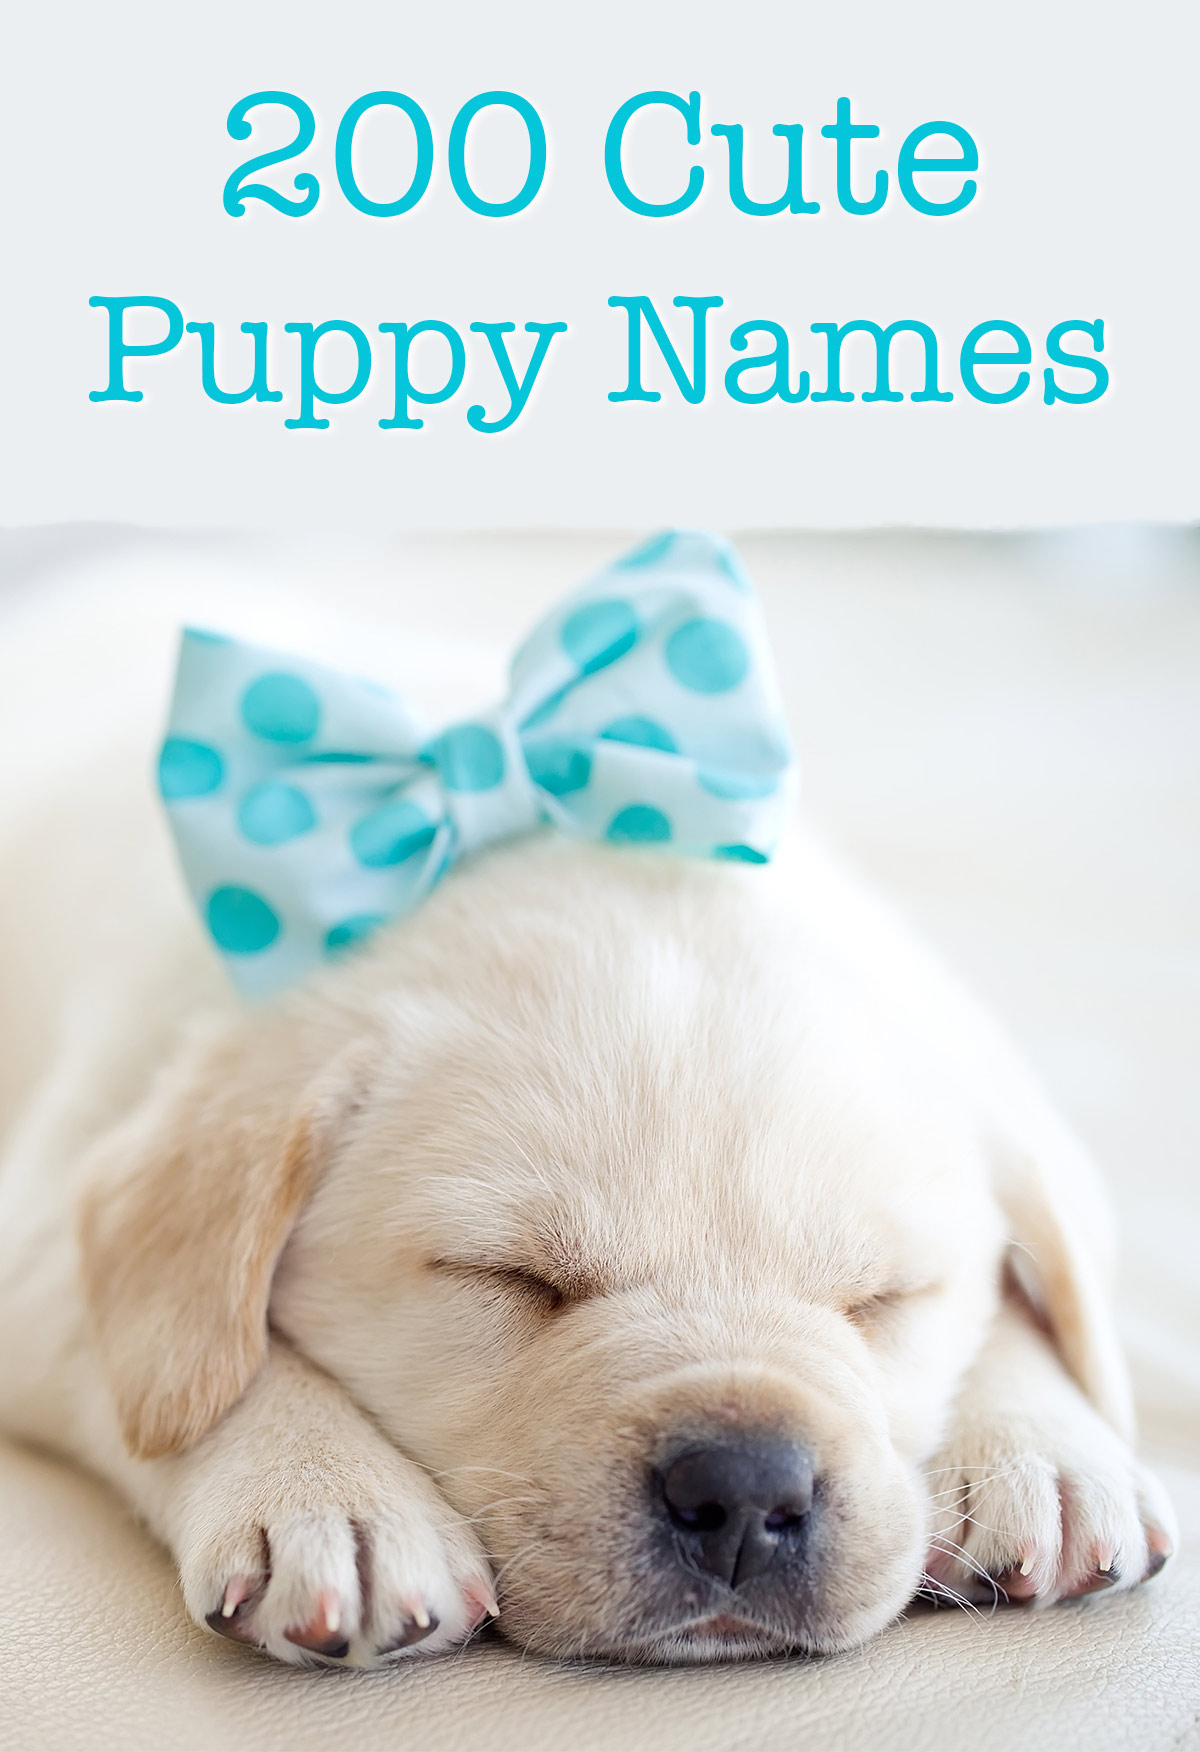 Cute puppy names over 200 adorable ideas for naming your dog cute puppy names voltagebd Gallery